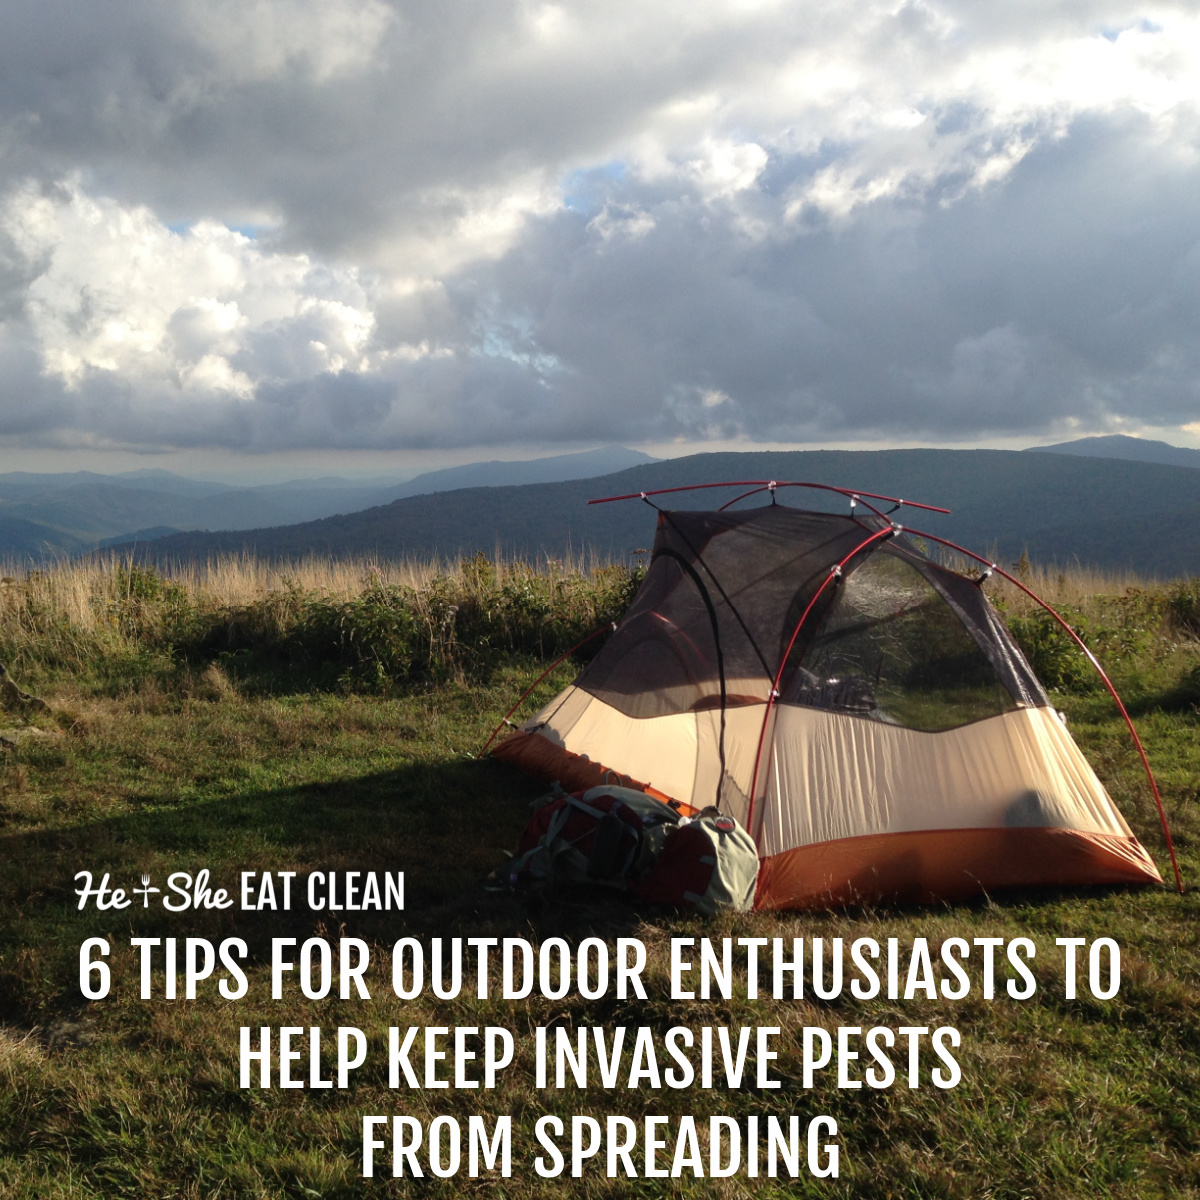 orange and cream tent on top of a mountain with sky and clouds in the background. text reads 6 Tips for Outdoor Enthusiasts to Help Keep Invasive Pests from Spreading